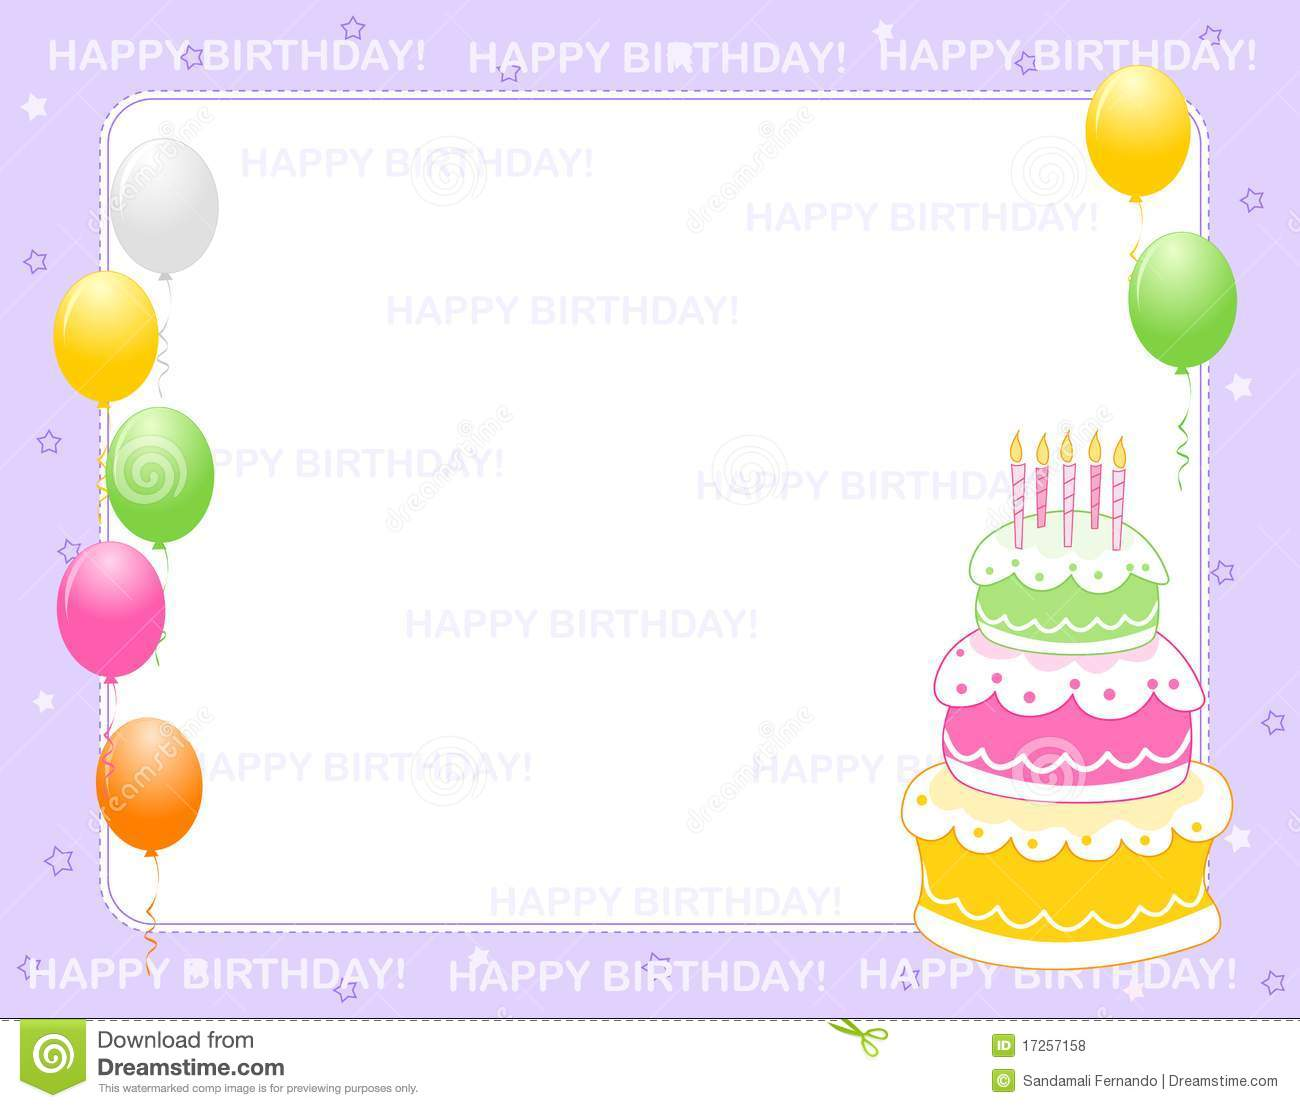 Birthday invitation card stock vector. Illustration of girl - 17150037